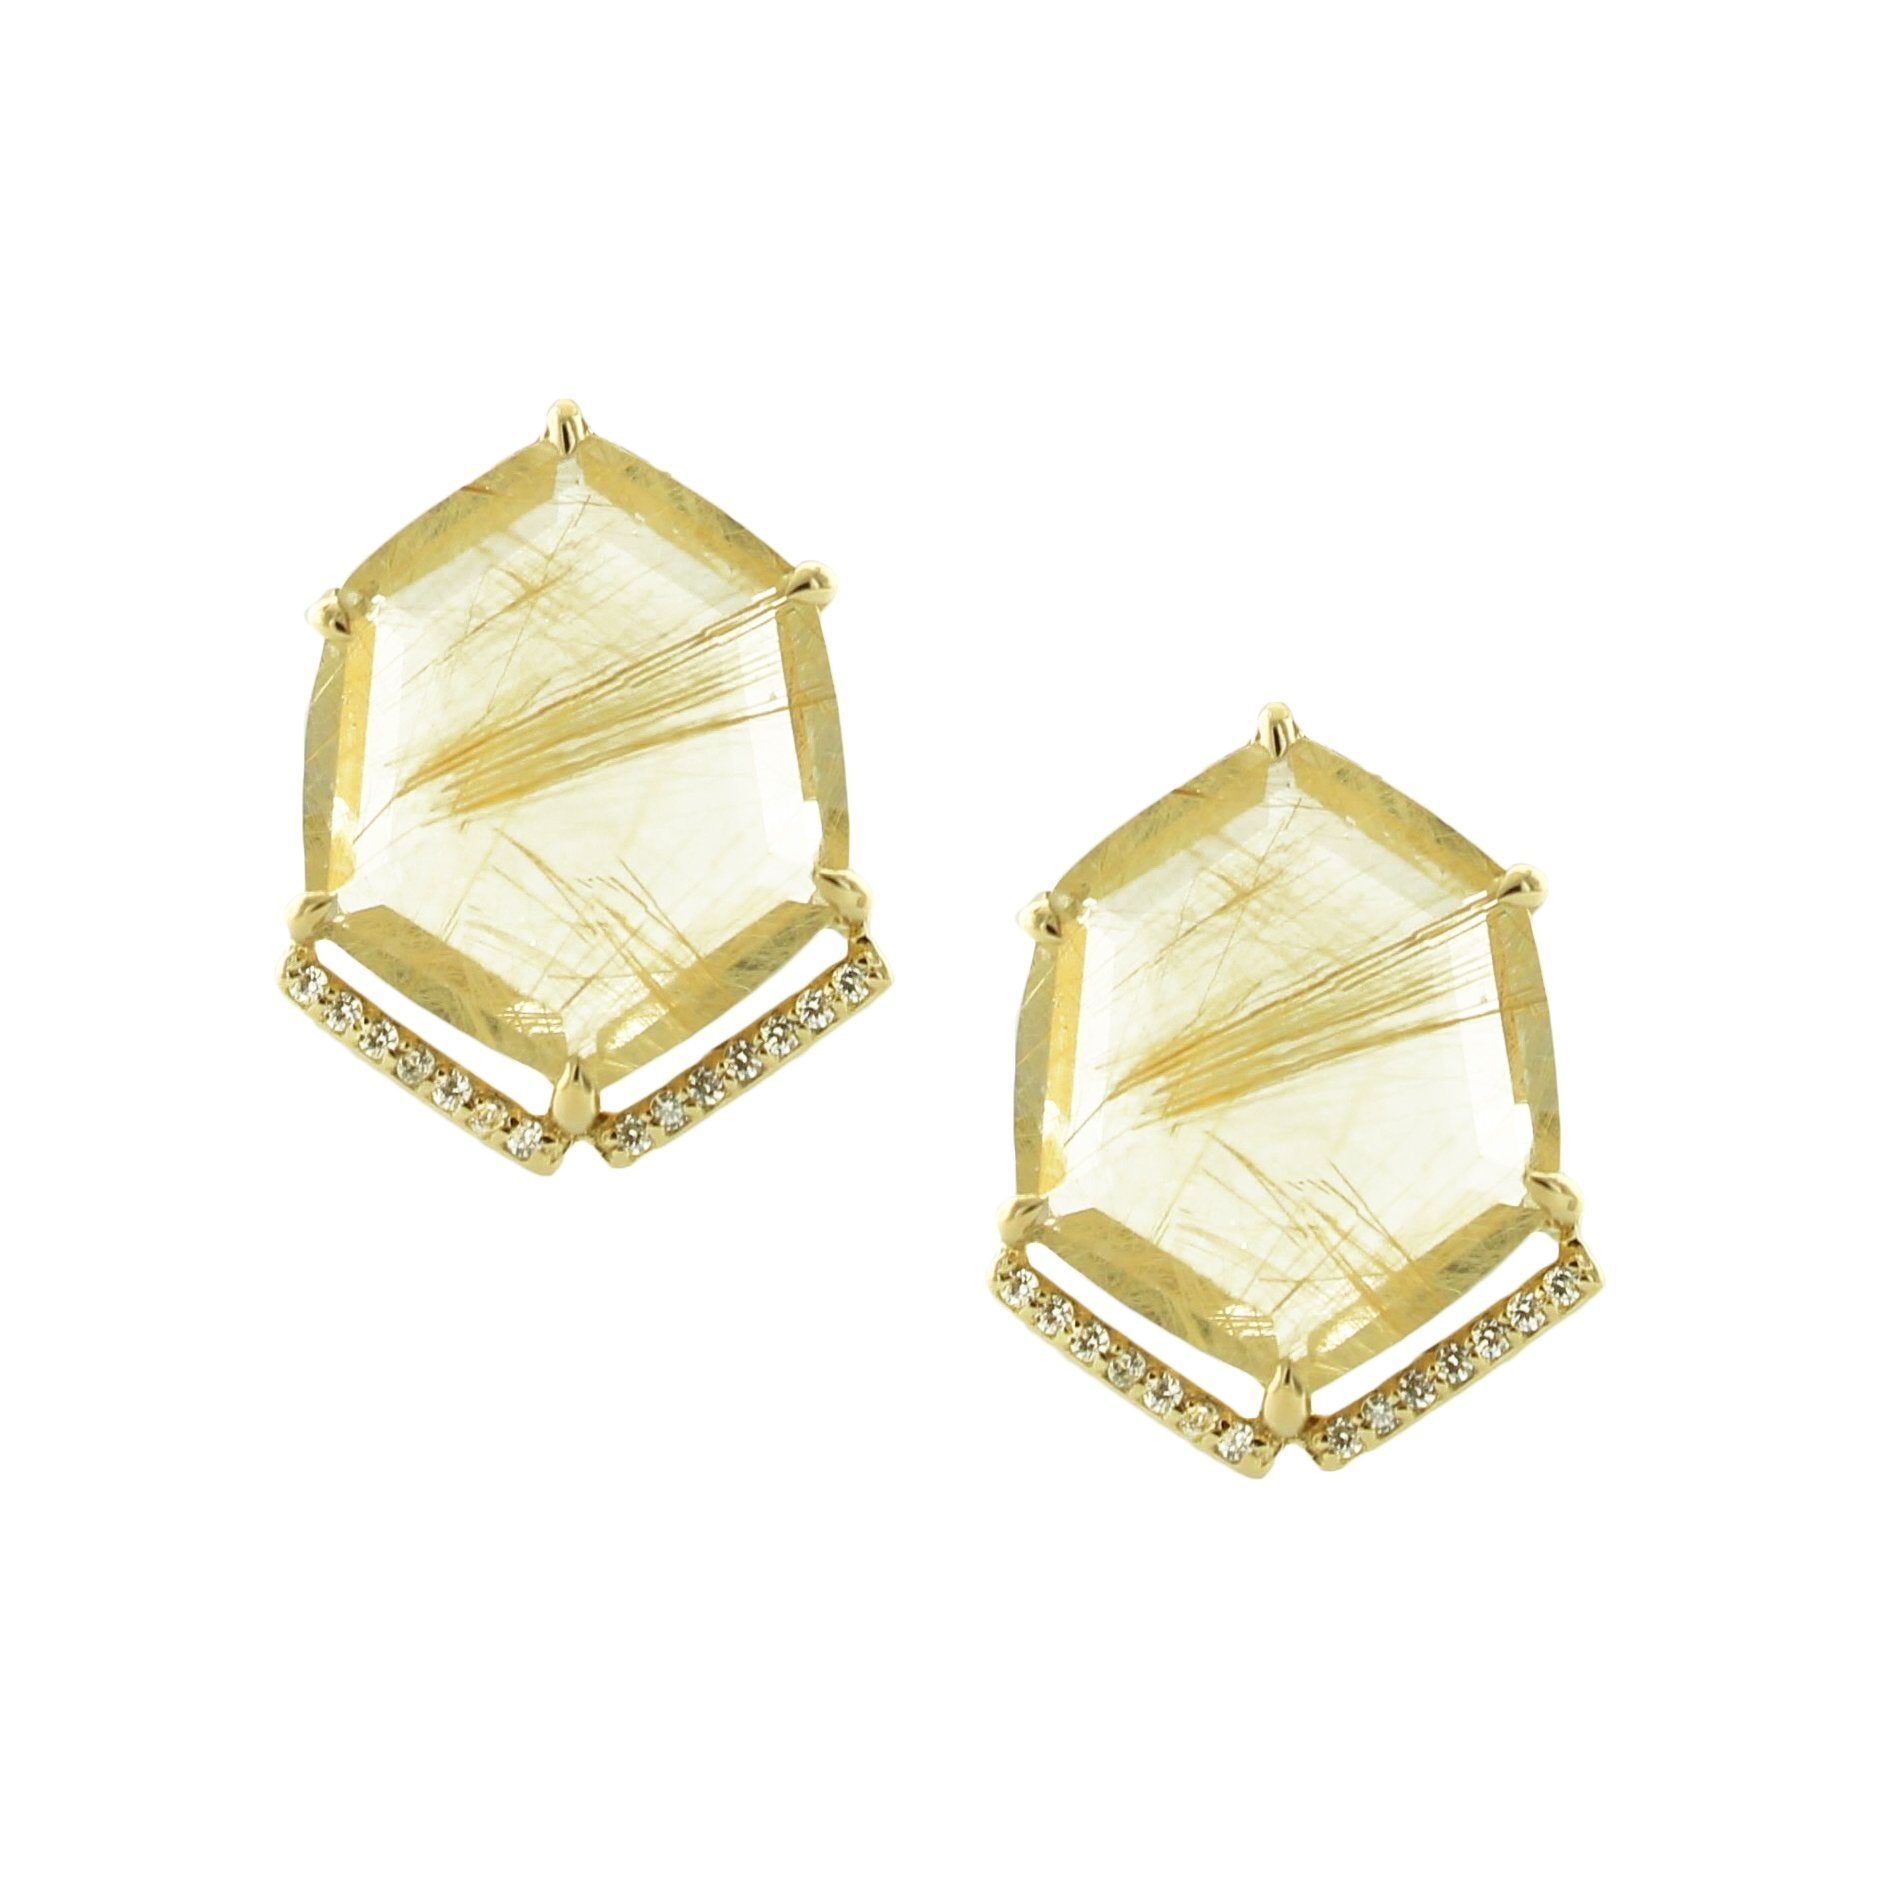 HONOUR SHIELD STATEMENT EARRINGS - GOLDEN RUTILE QUARTZ & GOLD - SO PRETTY CARA COTTER